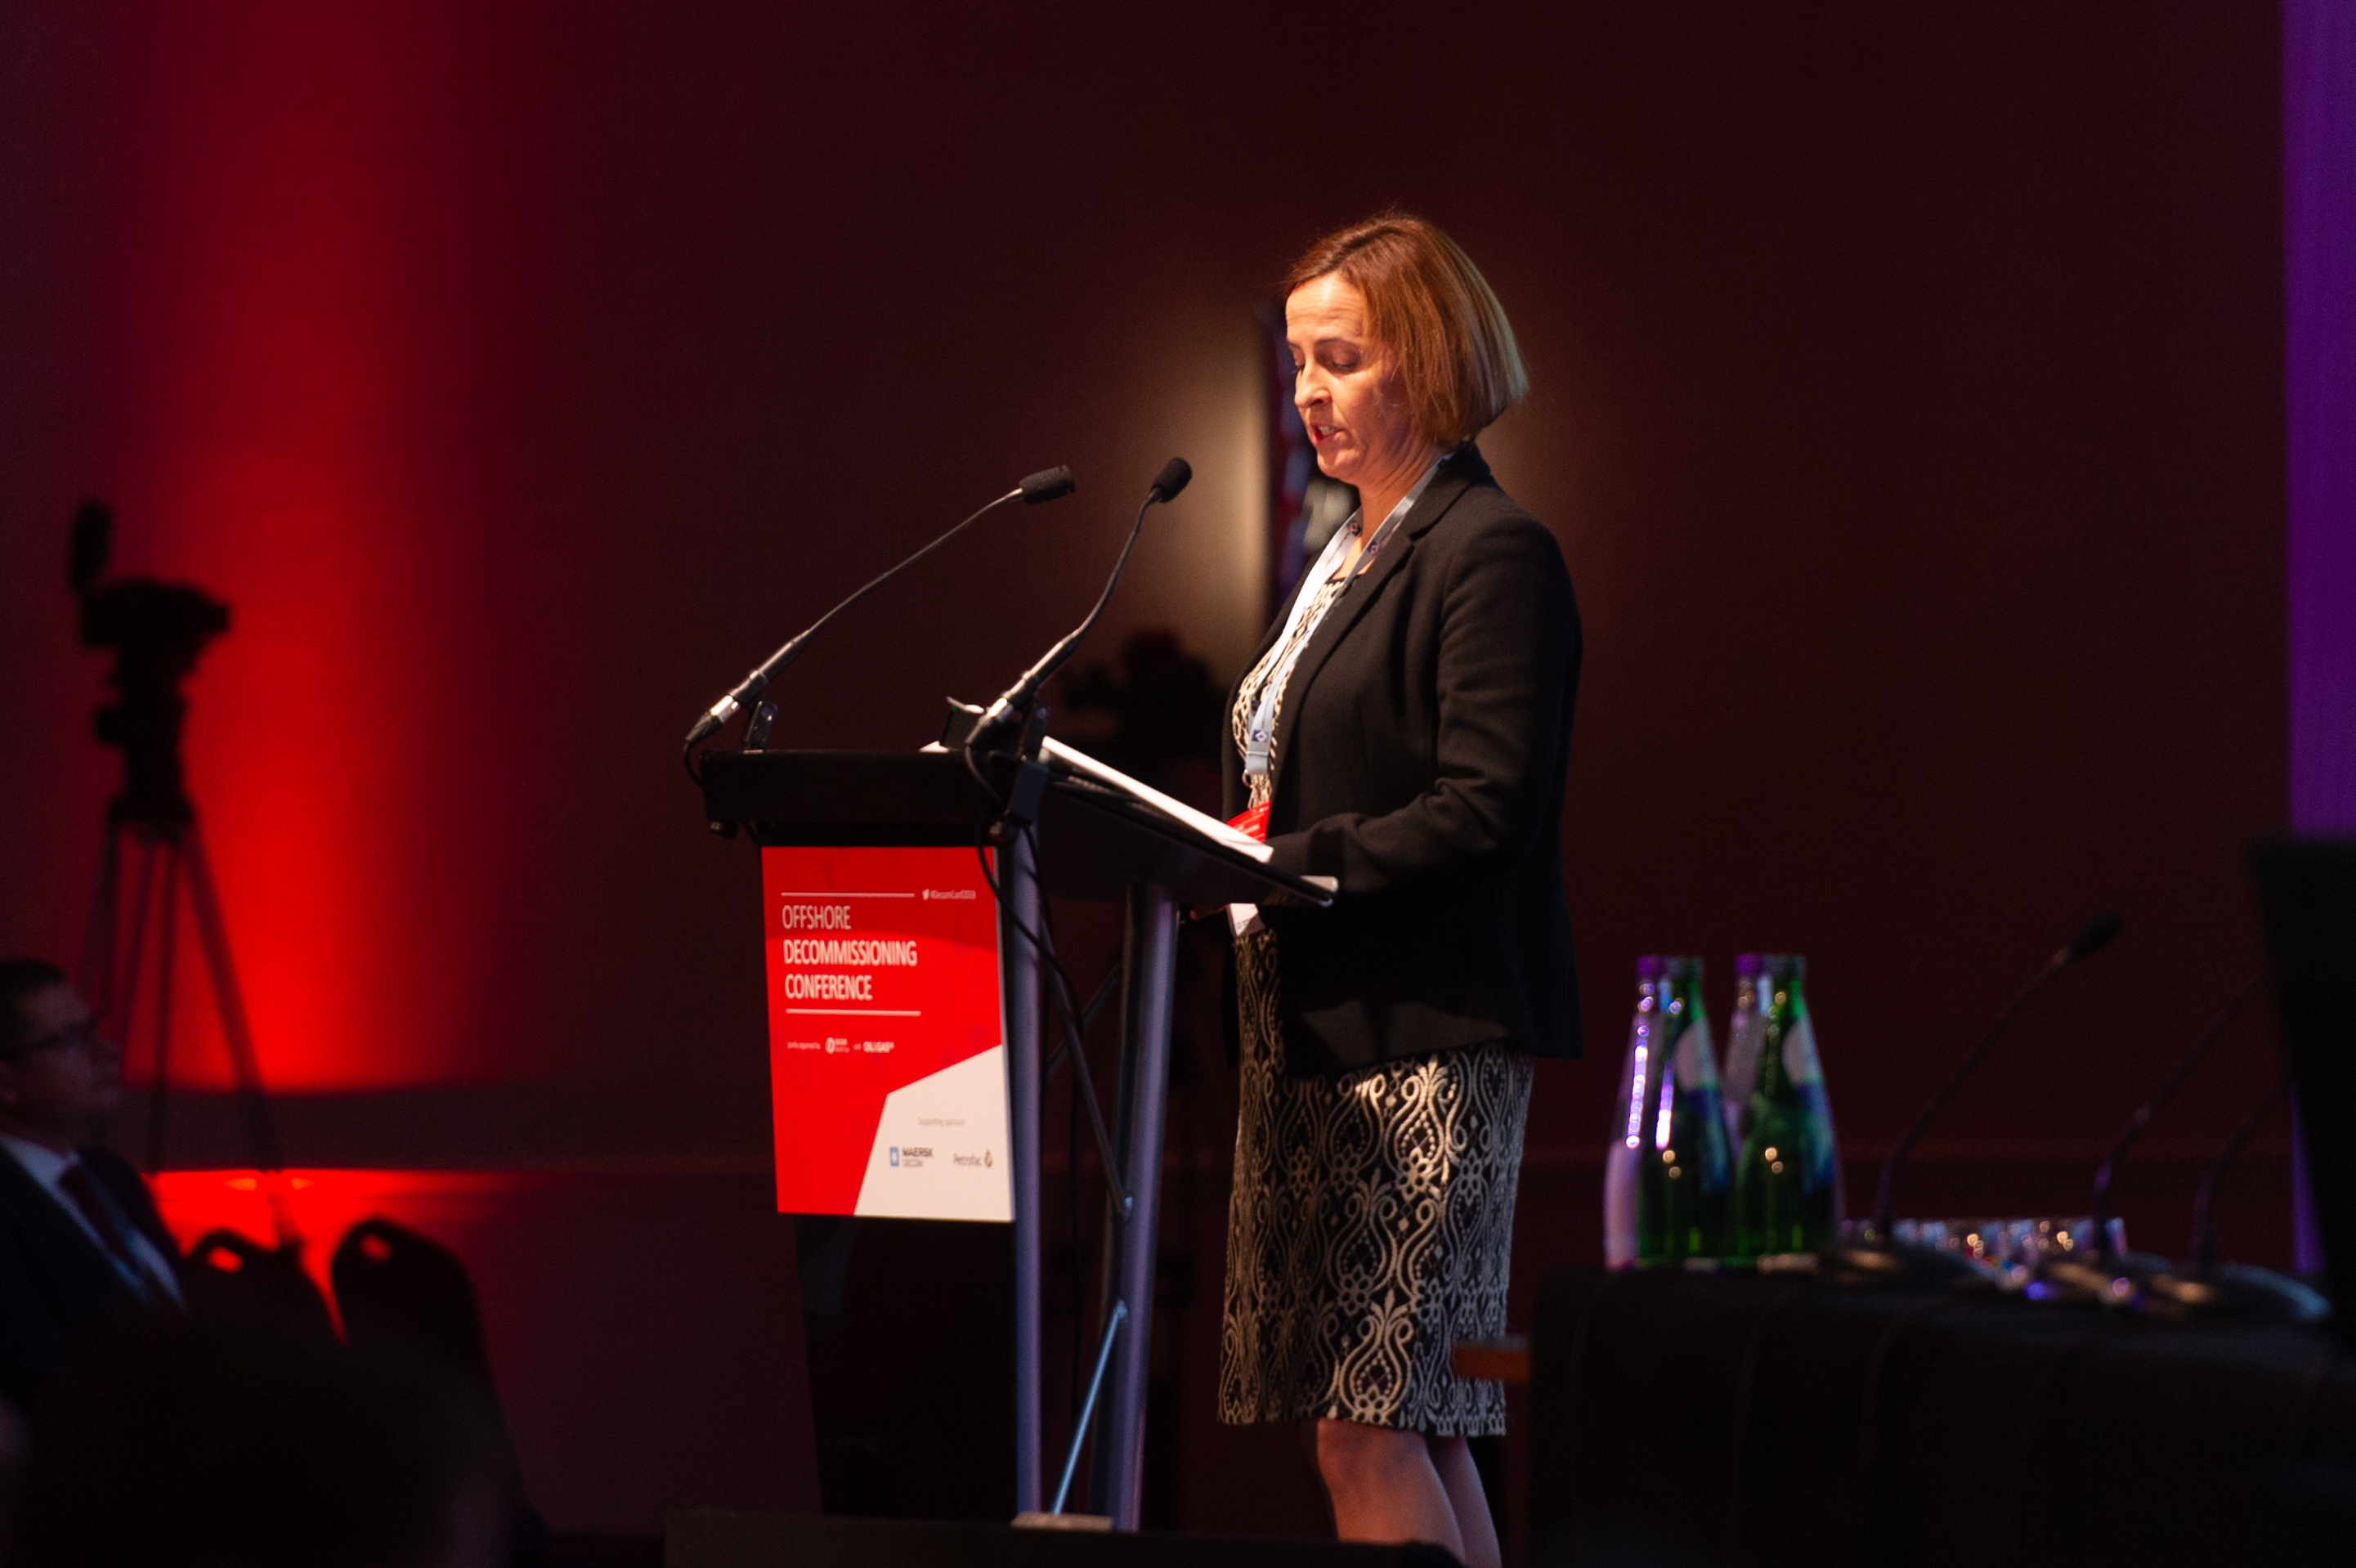 Pauline Innes (OPRED), at the Offshore Decommissioning Conference.